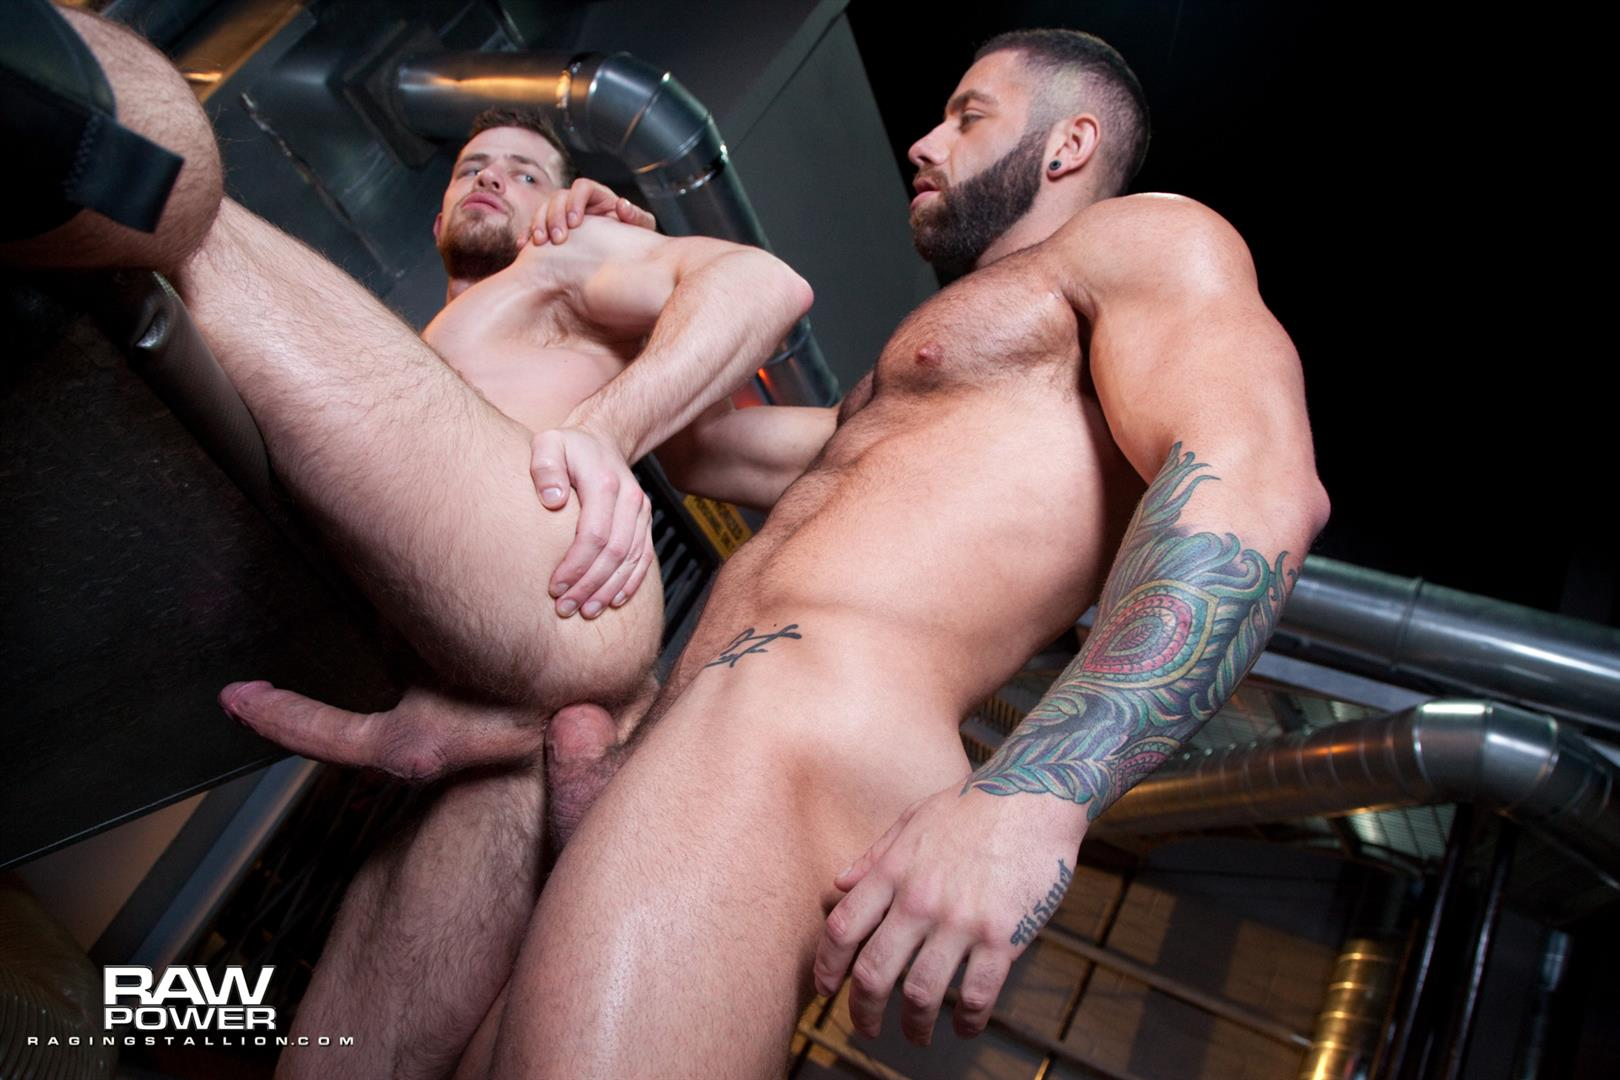 Raging-Stallion-Eddy-Ceetee-and-Kurtis-Wolfe-Big-Dick-Muscle-Hunks-Bareback-Sex-Video-12 ALERT: Raging Stallion Goes Bareback For The First Time With Eddy Ceetee and Kurtis Wolfe